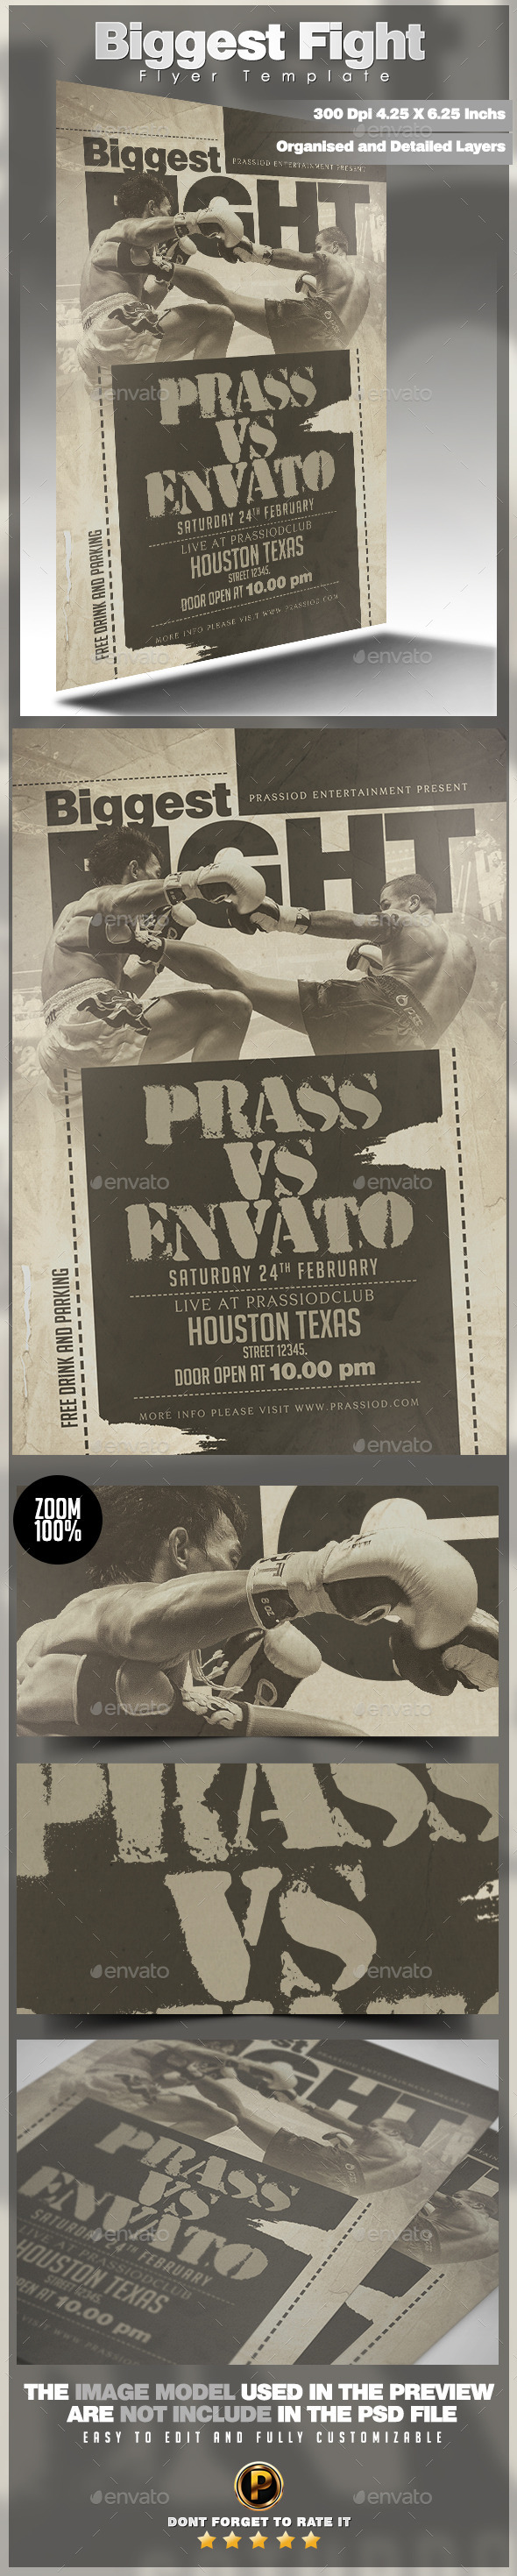 Biggest Fight Flyer Template - Sports Events